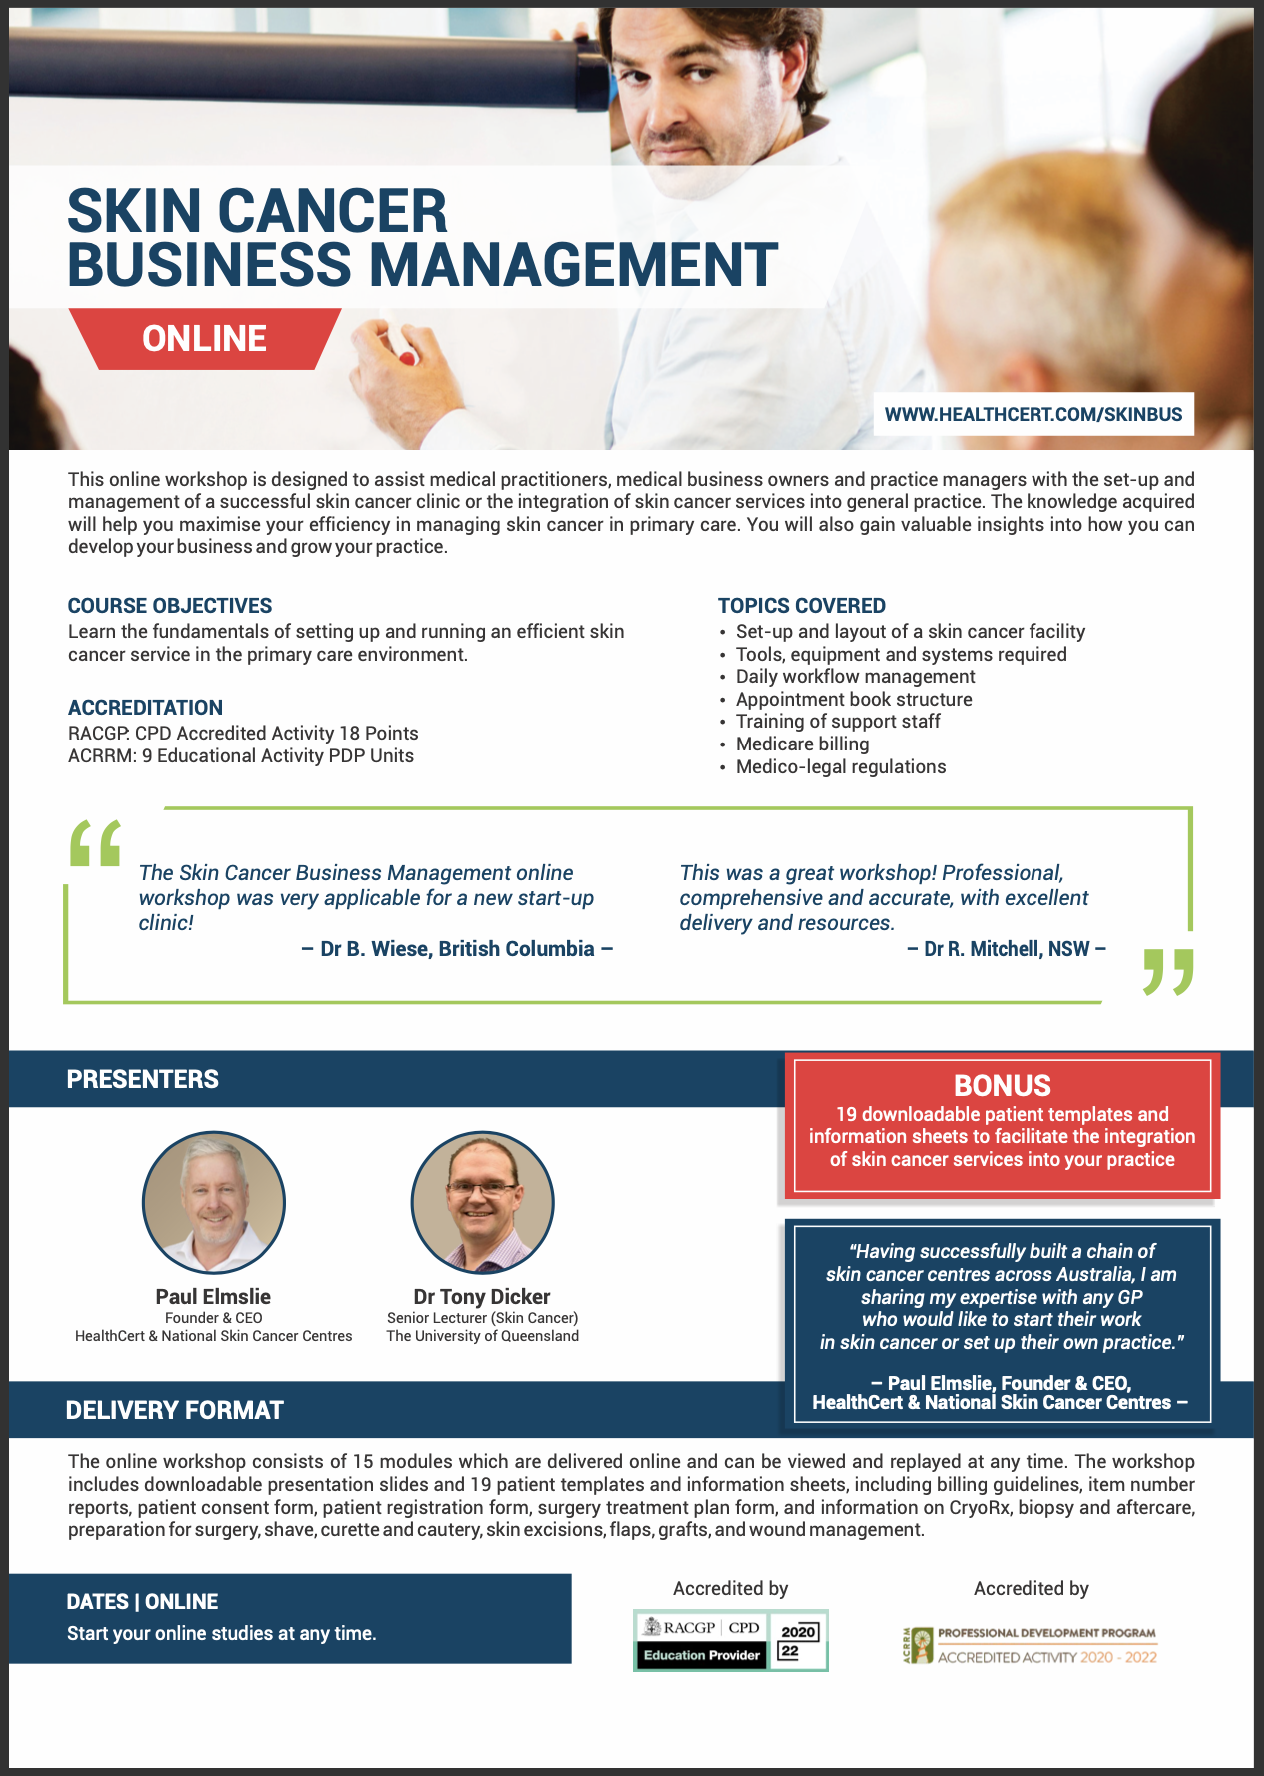 Skin_Cancer_Business_Management_Brochure_Image